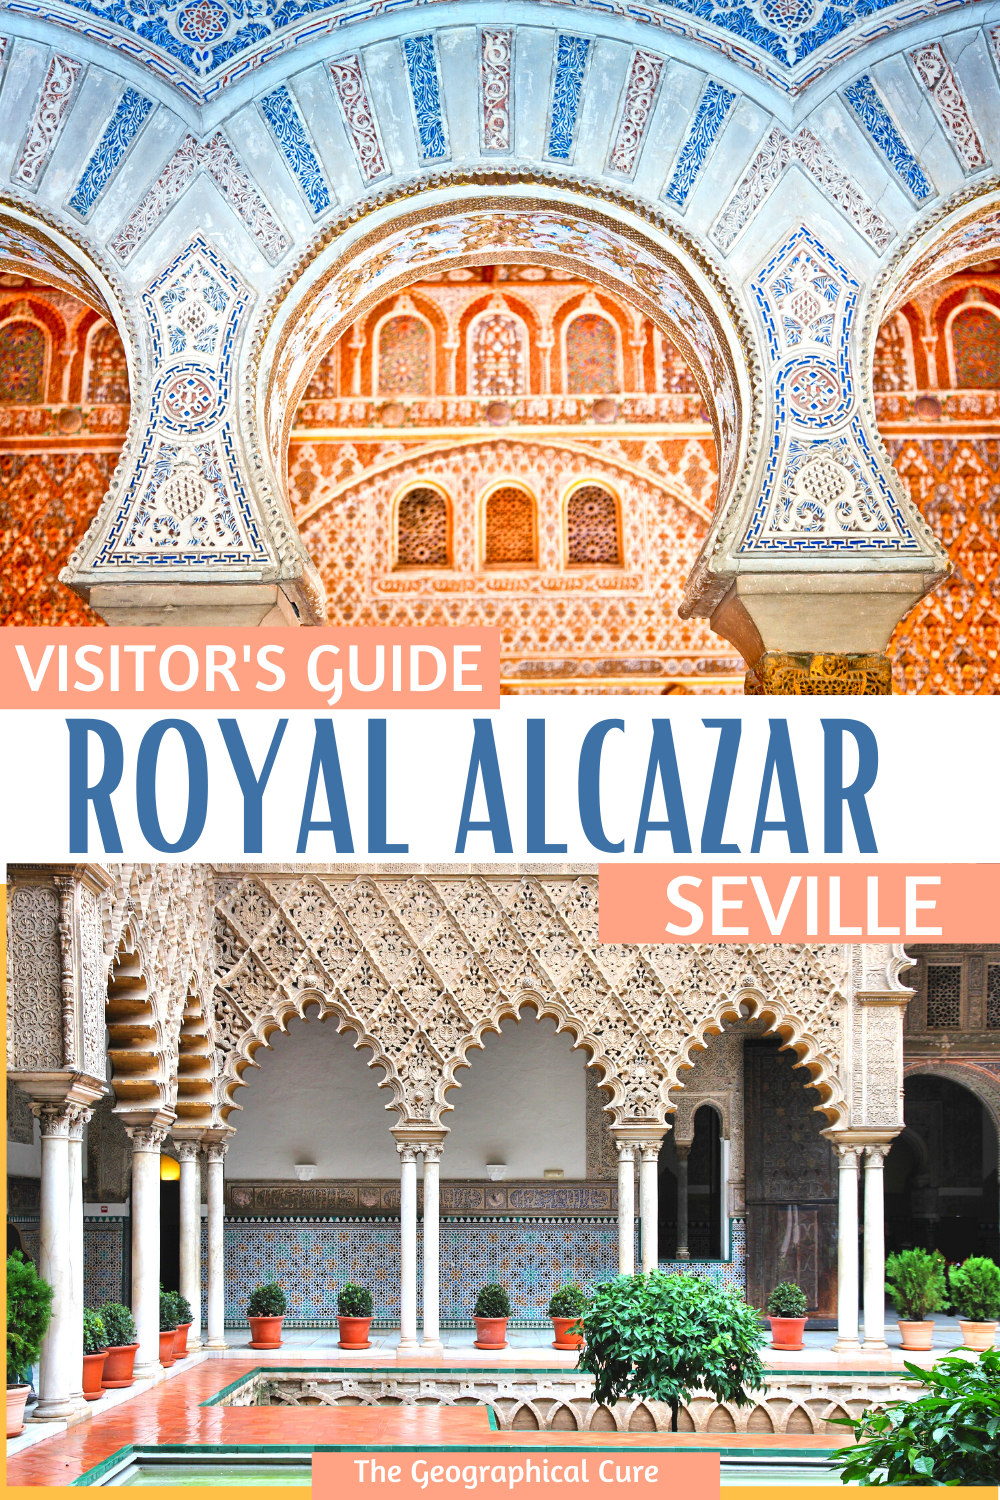 Ultimate Visitor's Guide to the Royal Alcazar in Seville Spain